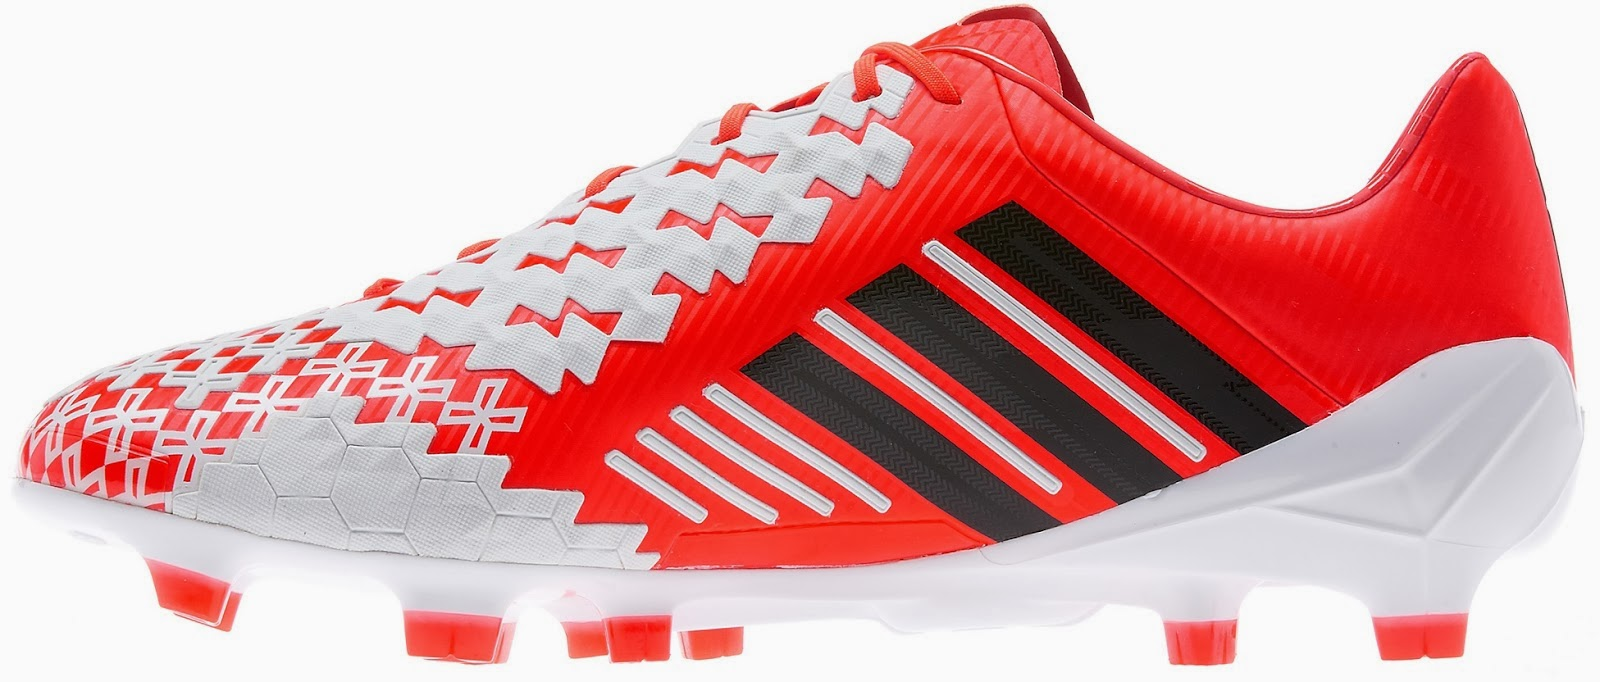 purchase cheap 42958 eacb5 Adidas Predator LZ | RONALD-TAMBUNAN